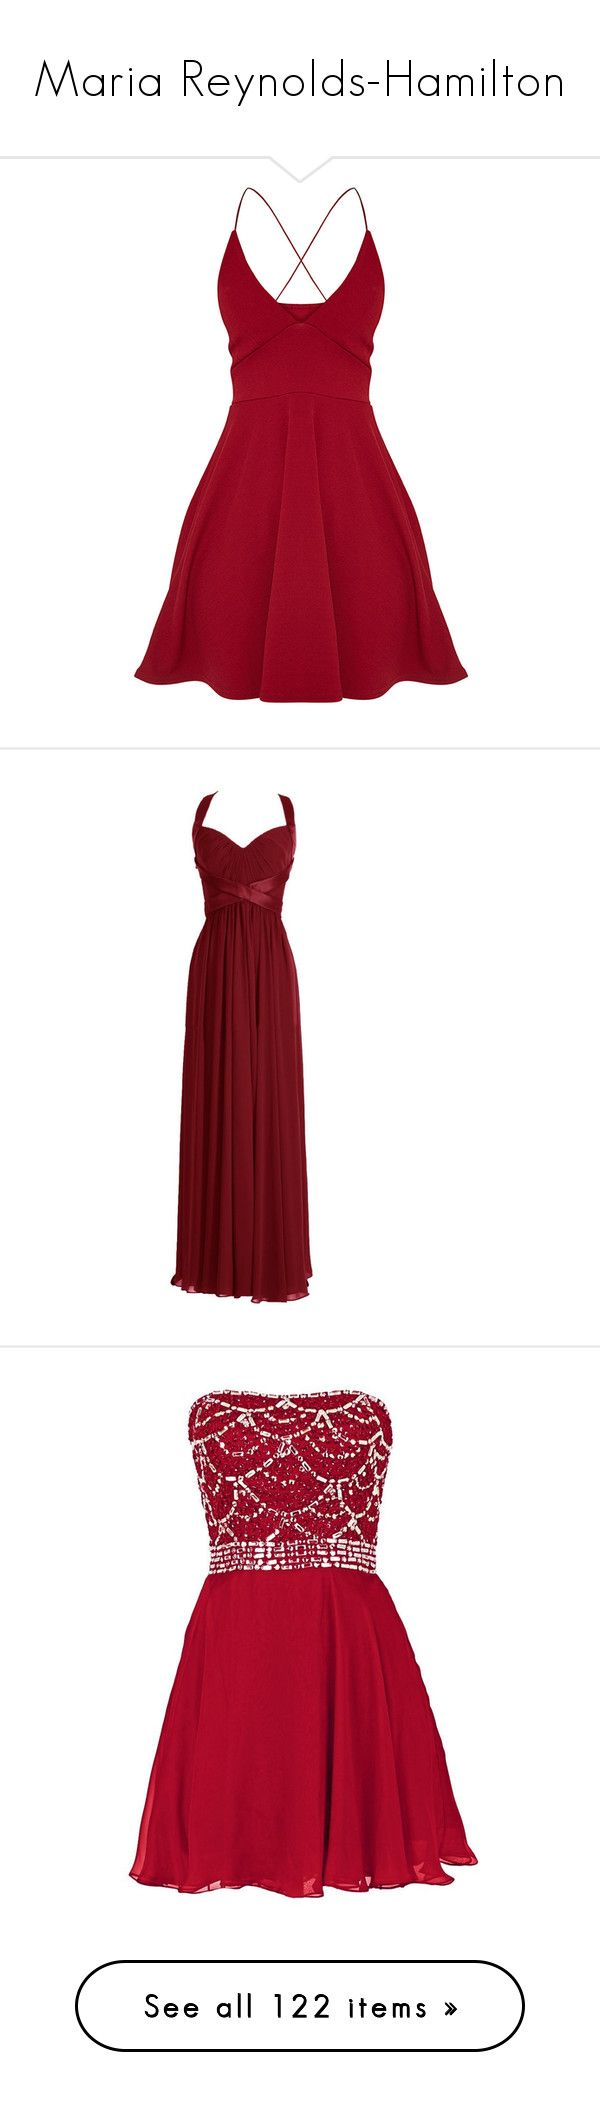 """""""Maria Reynolds-Hamilton"""" by silverbellatrix ❤ liked on Polyvore featuring dresses, red plunge dress, red skater dress, crepe dress, plunge skater dress, red dress, gowns, vestidos, abiti and long formal dresses"""